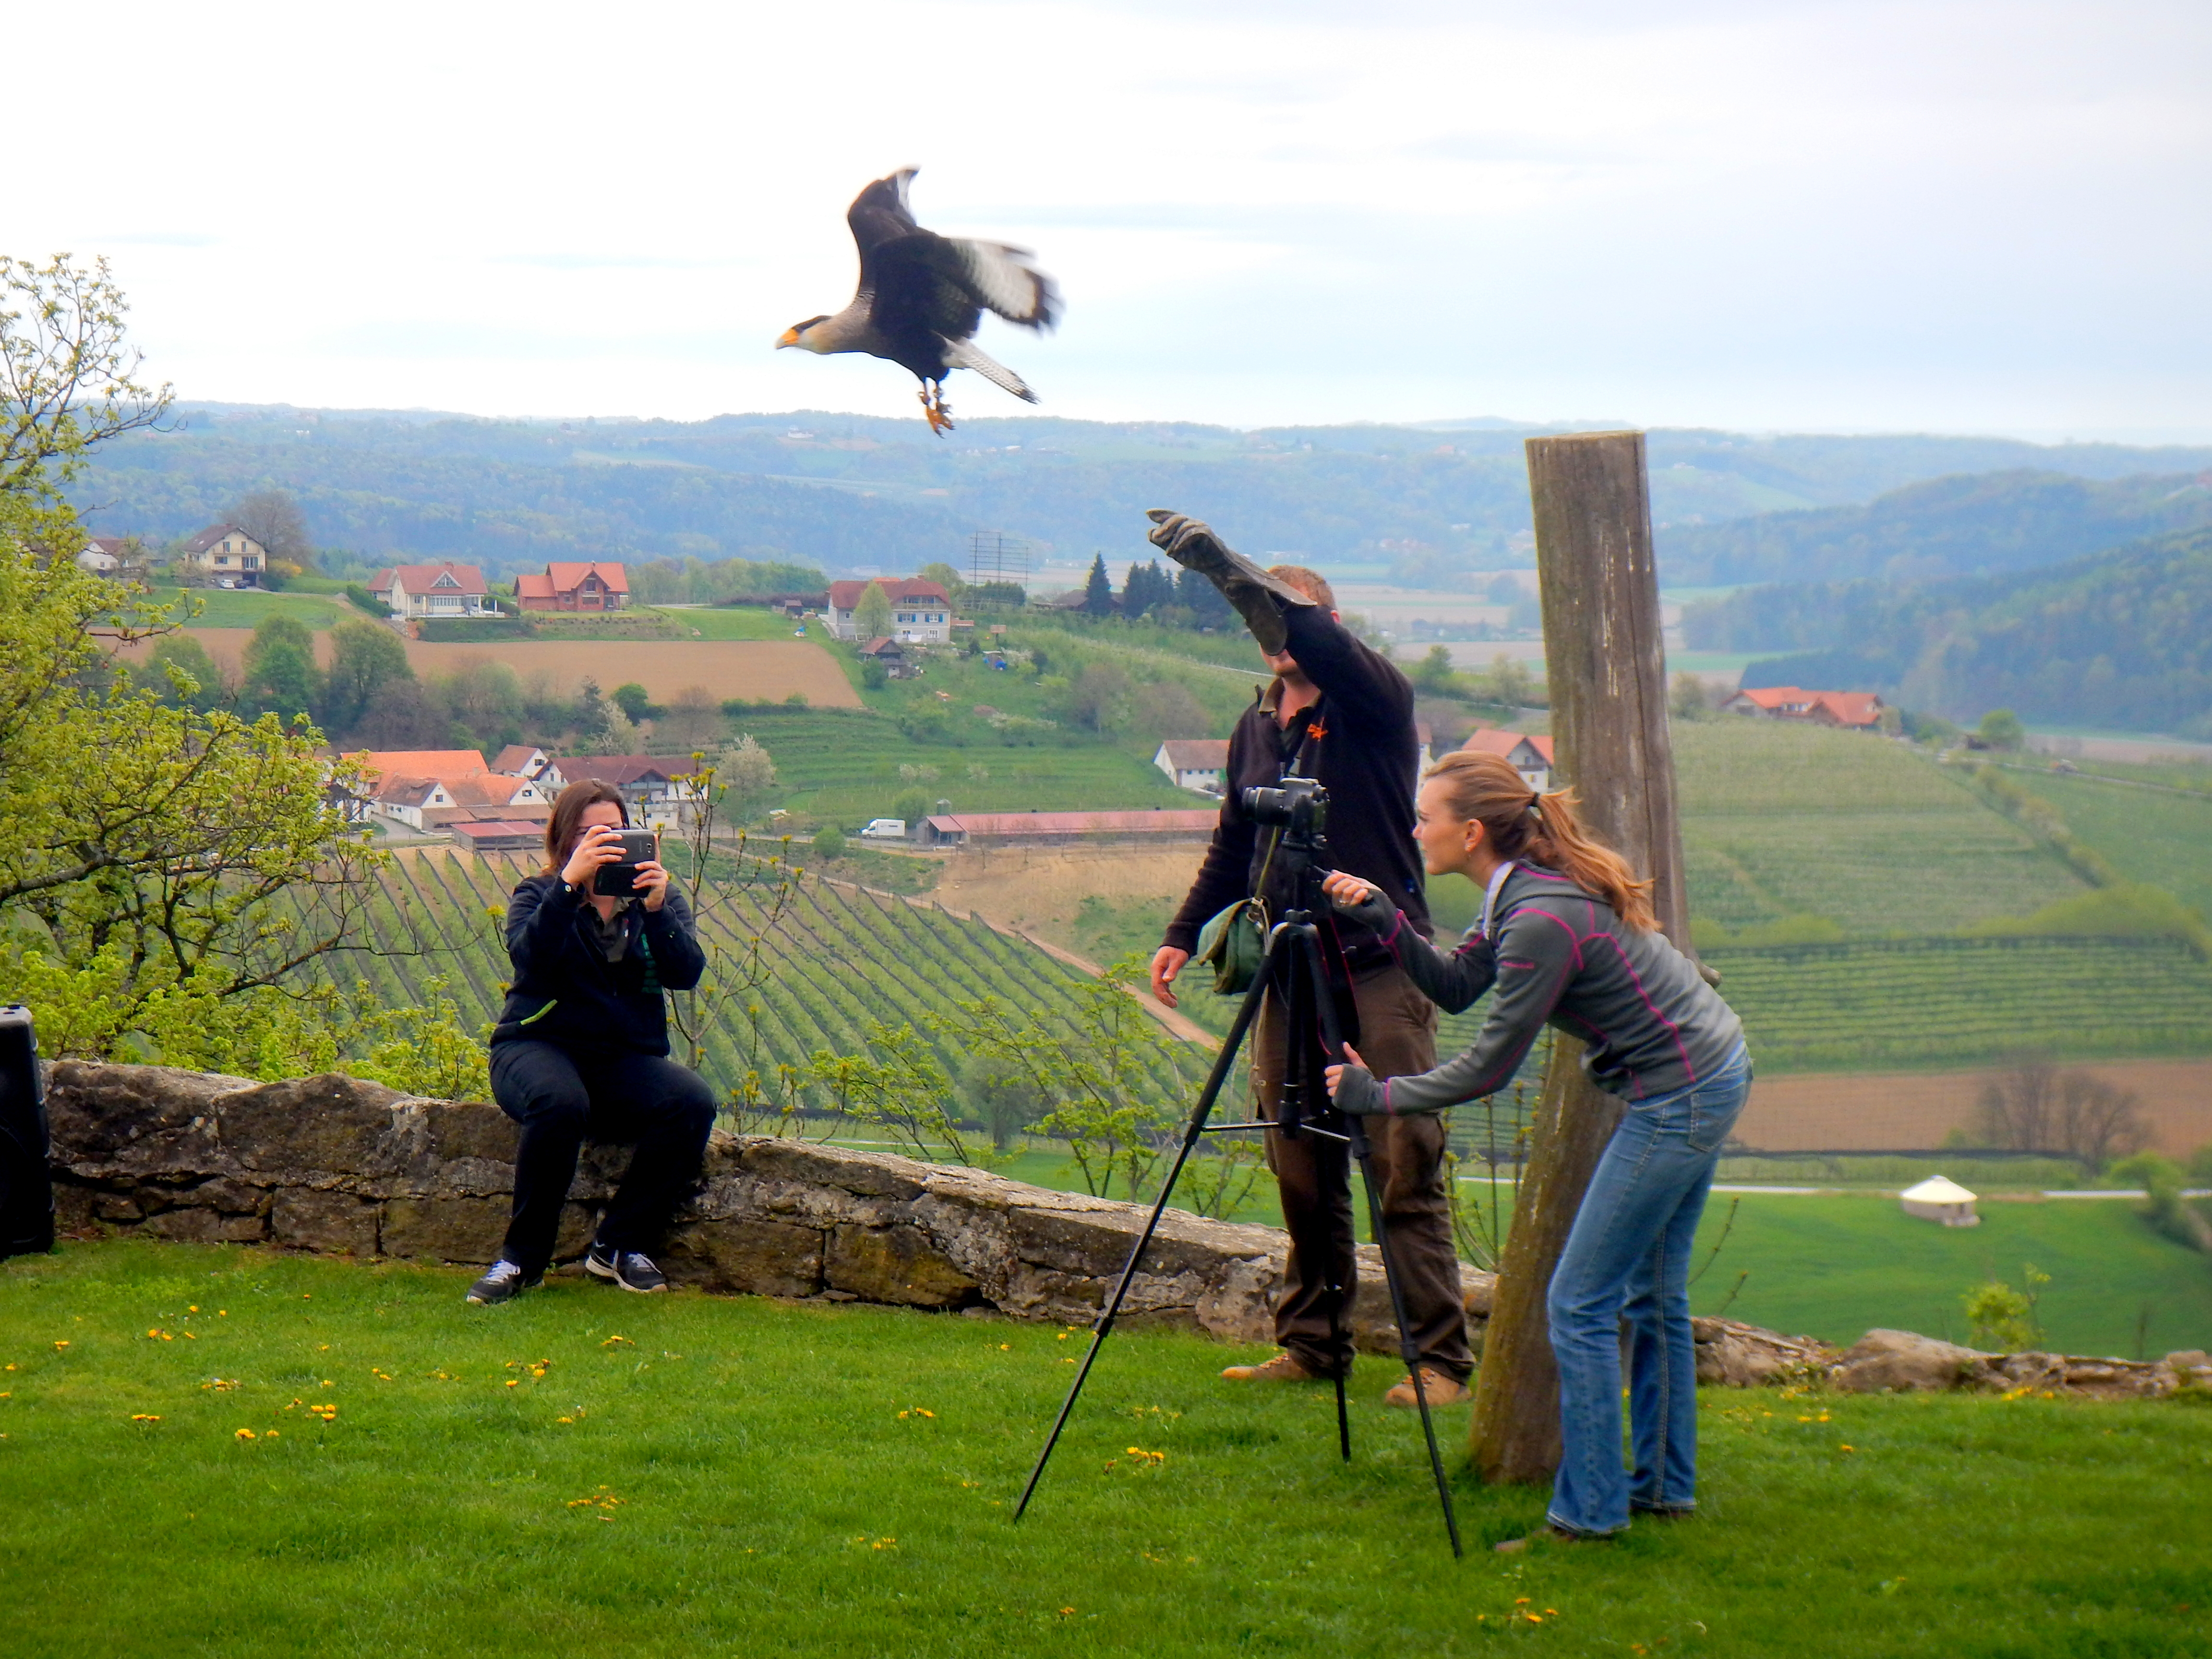 Working with the falconry in Riegersburg, Austria